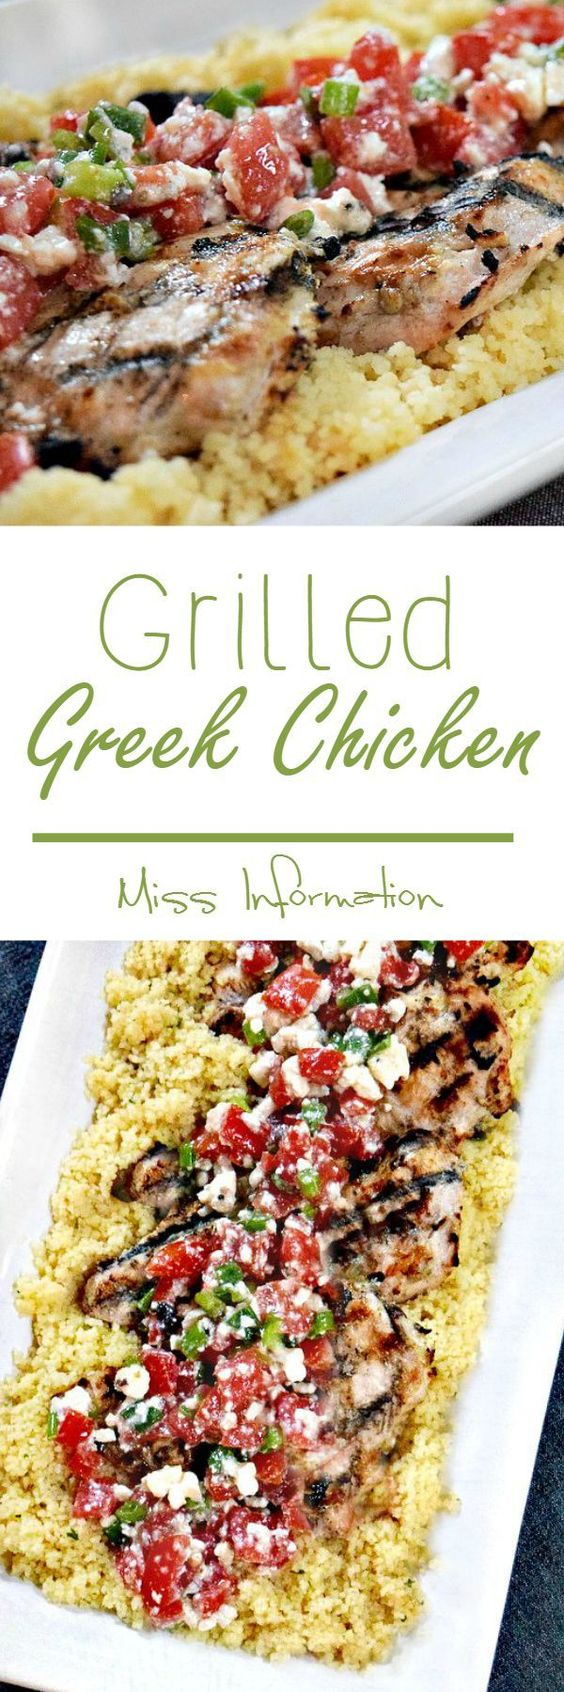 Grilled Greek Chicken marinated in Greek yogurt is so good we've made it 3 times in the past month!